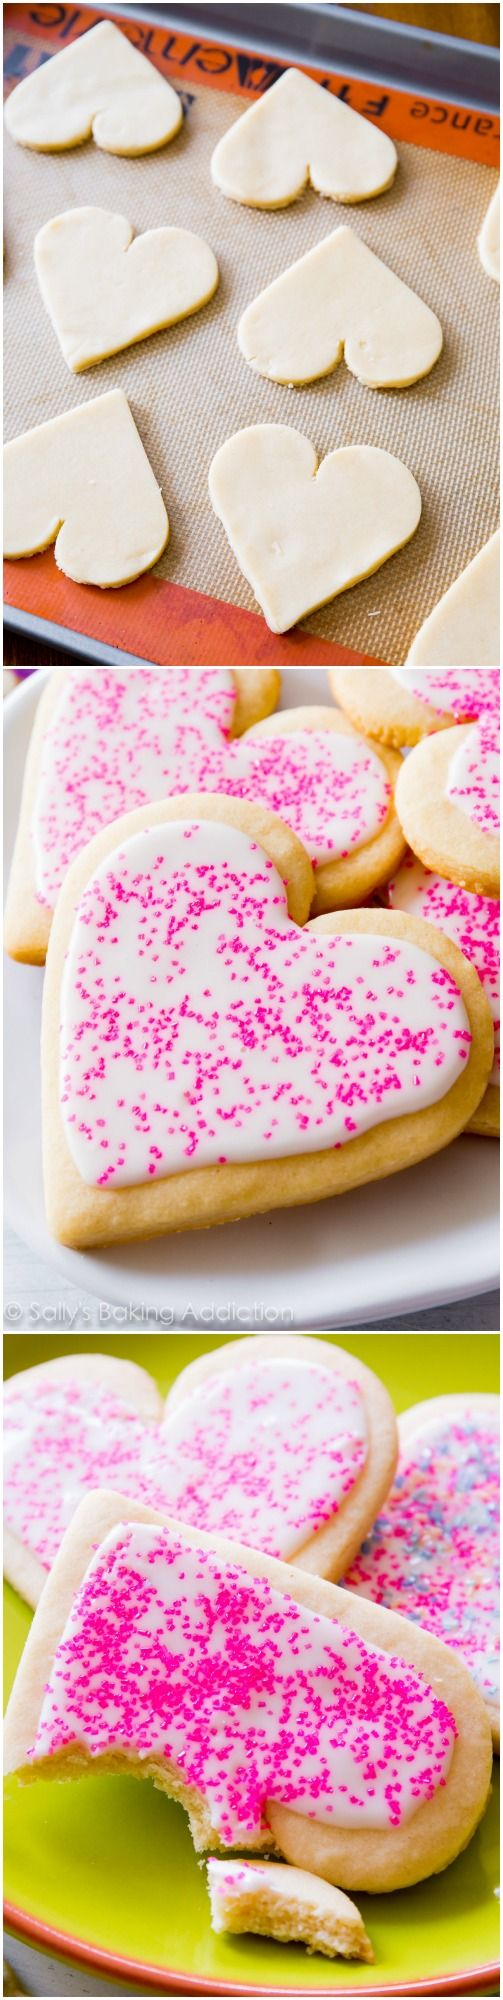 The one and only Cut-Out Sugar Cookie recipe you need! Easy, quick, straightforward. Soft, melt in your mouth cookies!